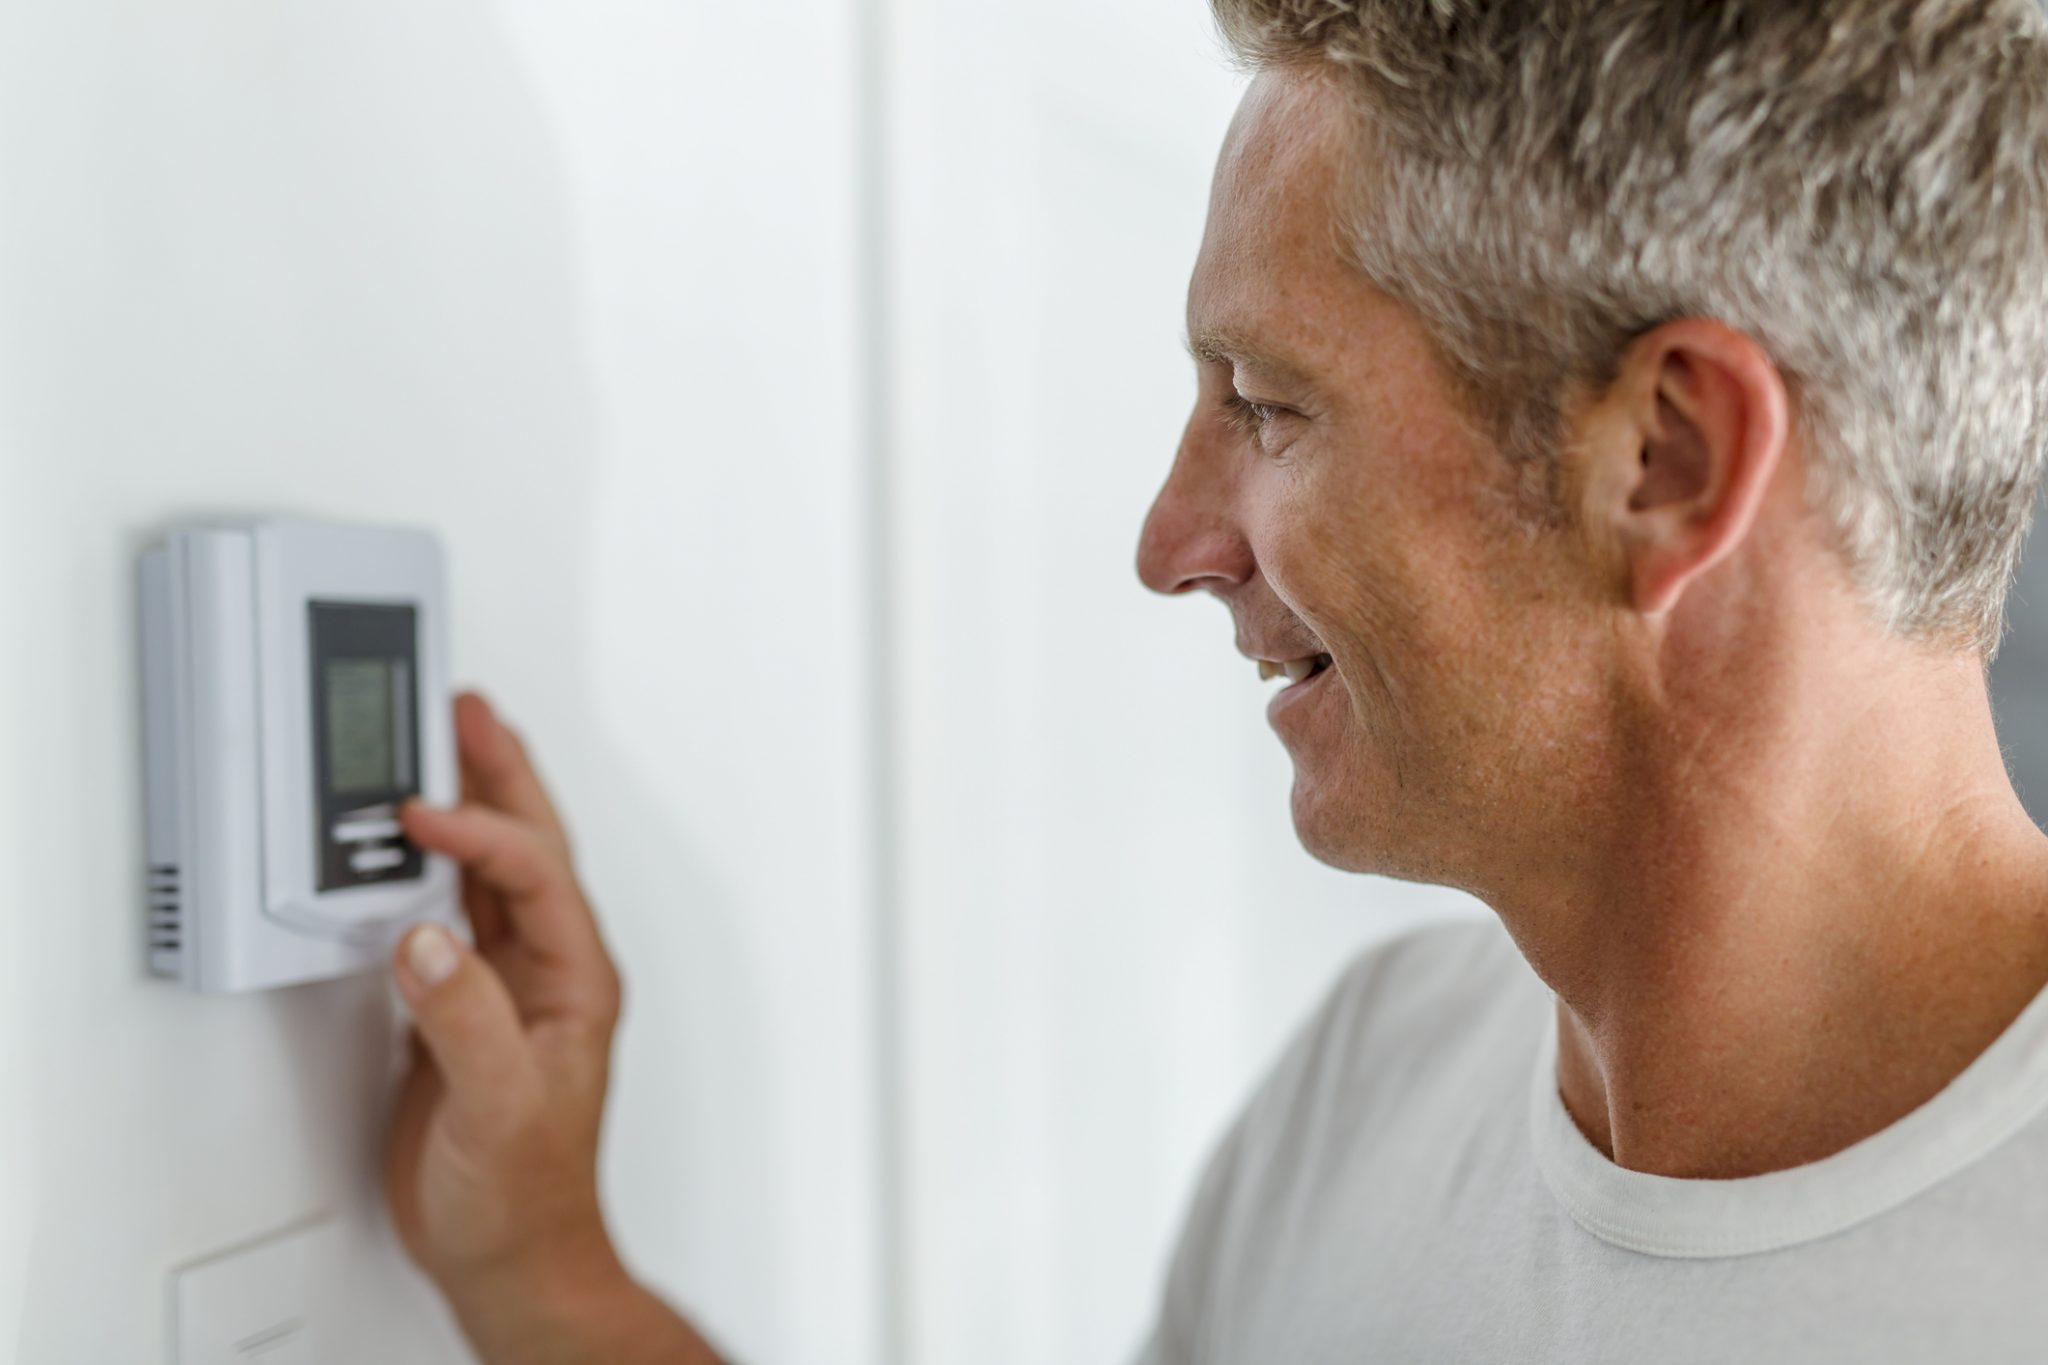 Ideal Thermostat Settings for Cleveland Summers